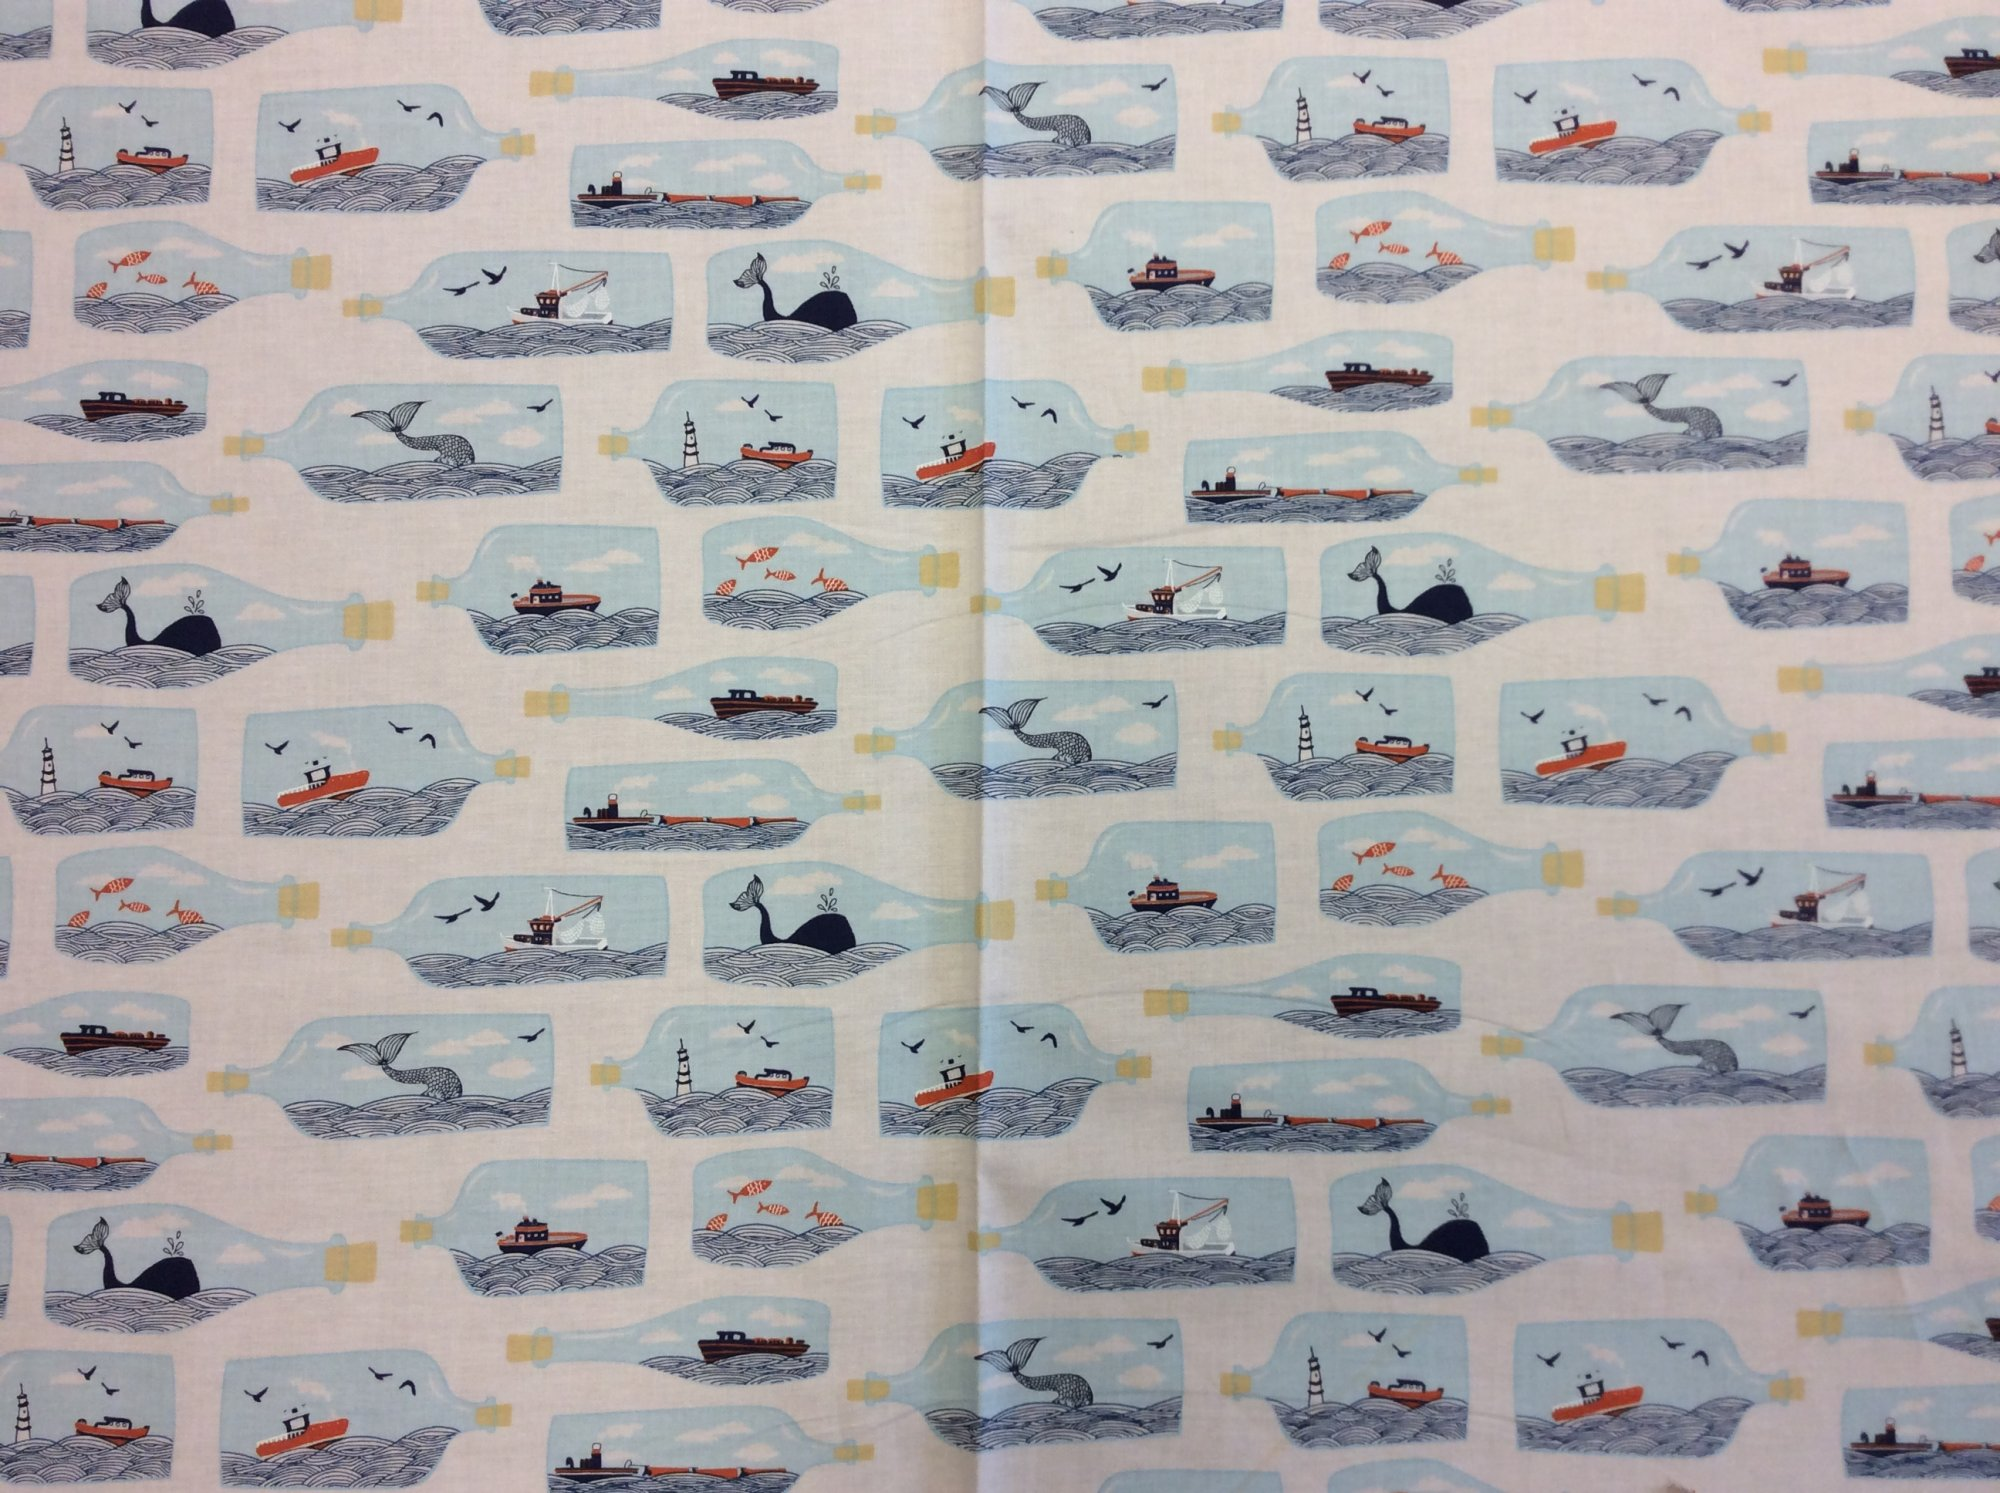 Sailor Ship in a Bottle Ocean Sea Retro Cotton Quilt Fabric FT146